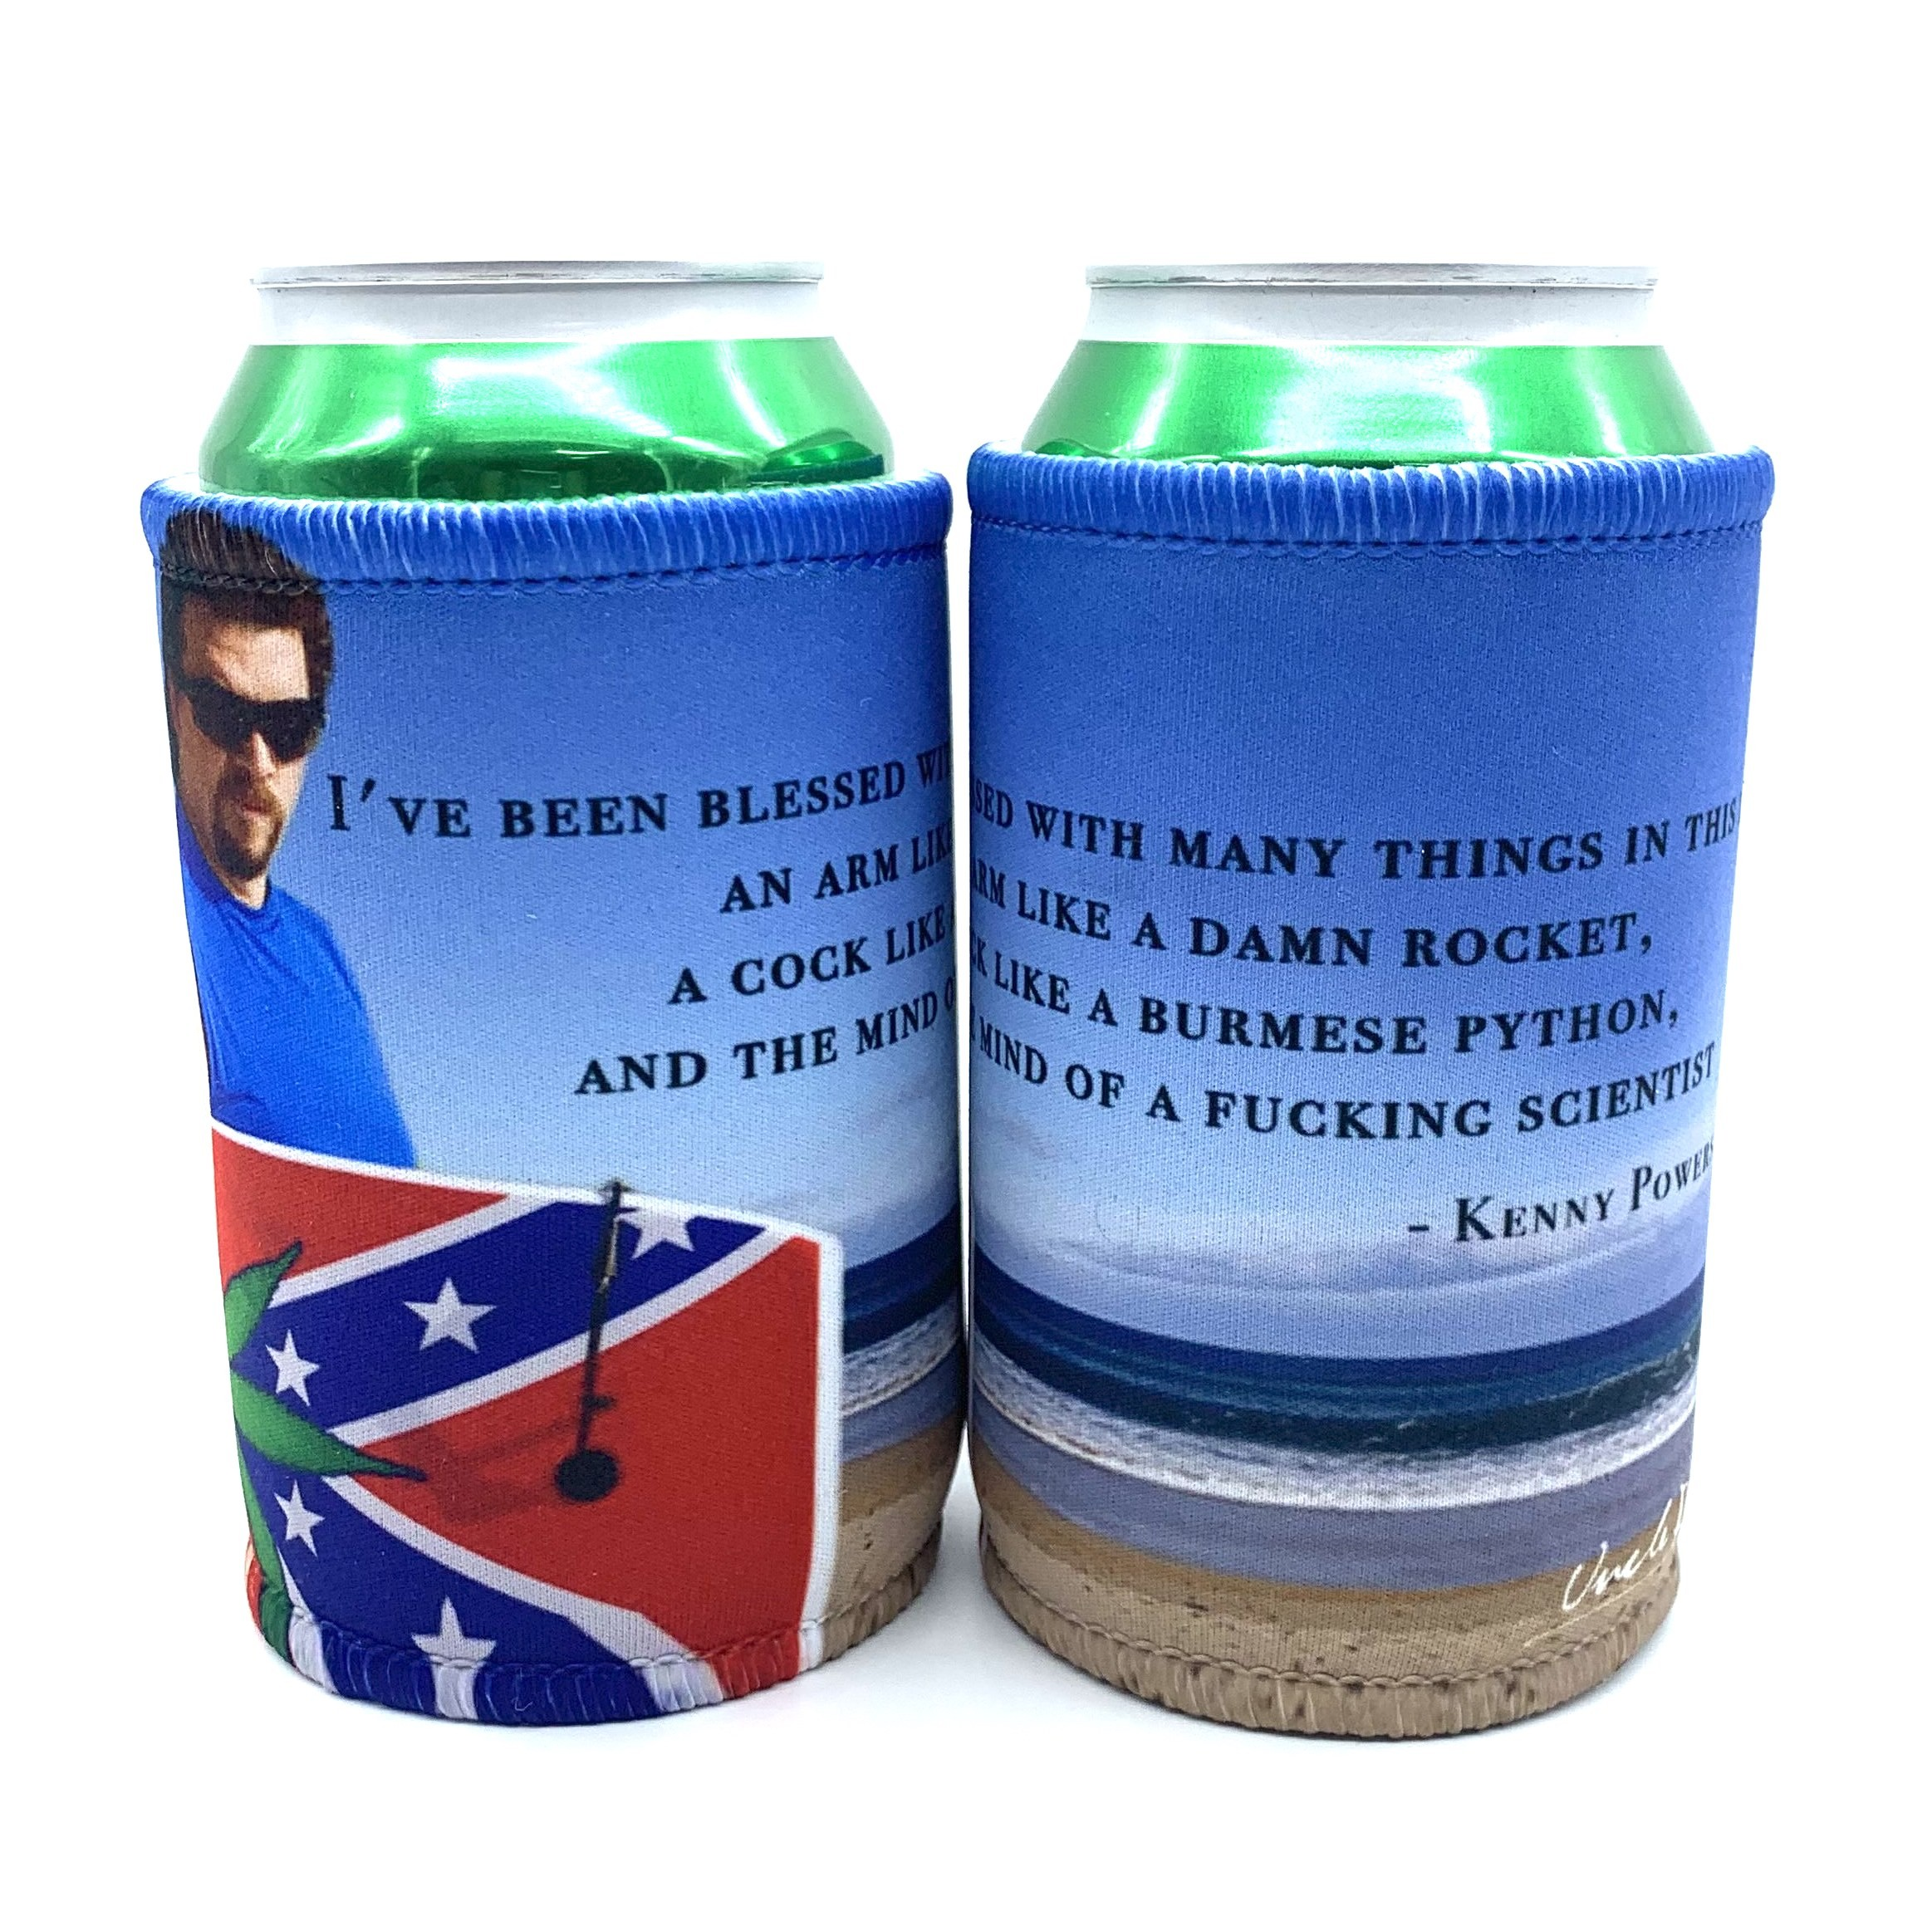 KENNY STUBBY HOLDER